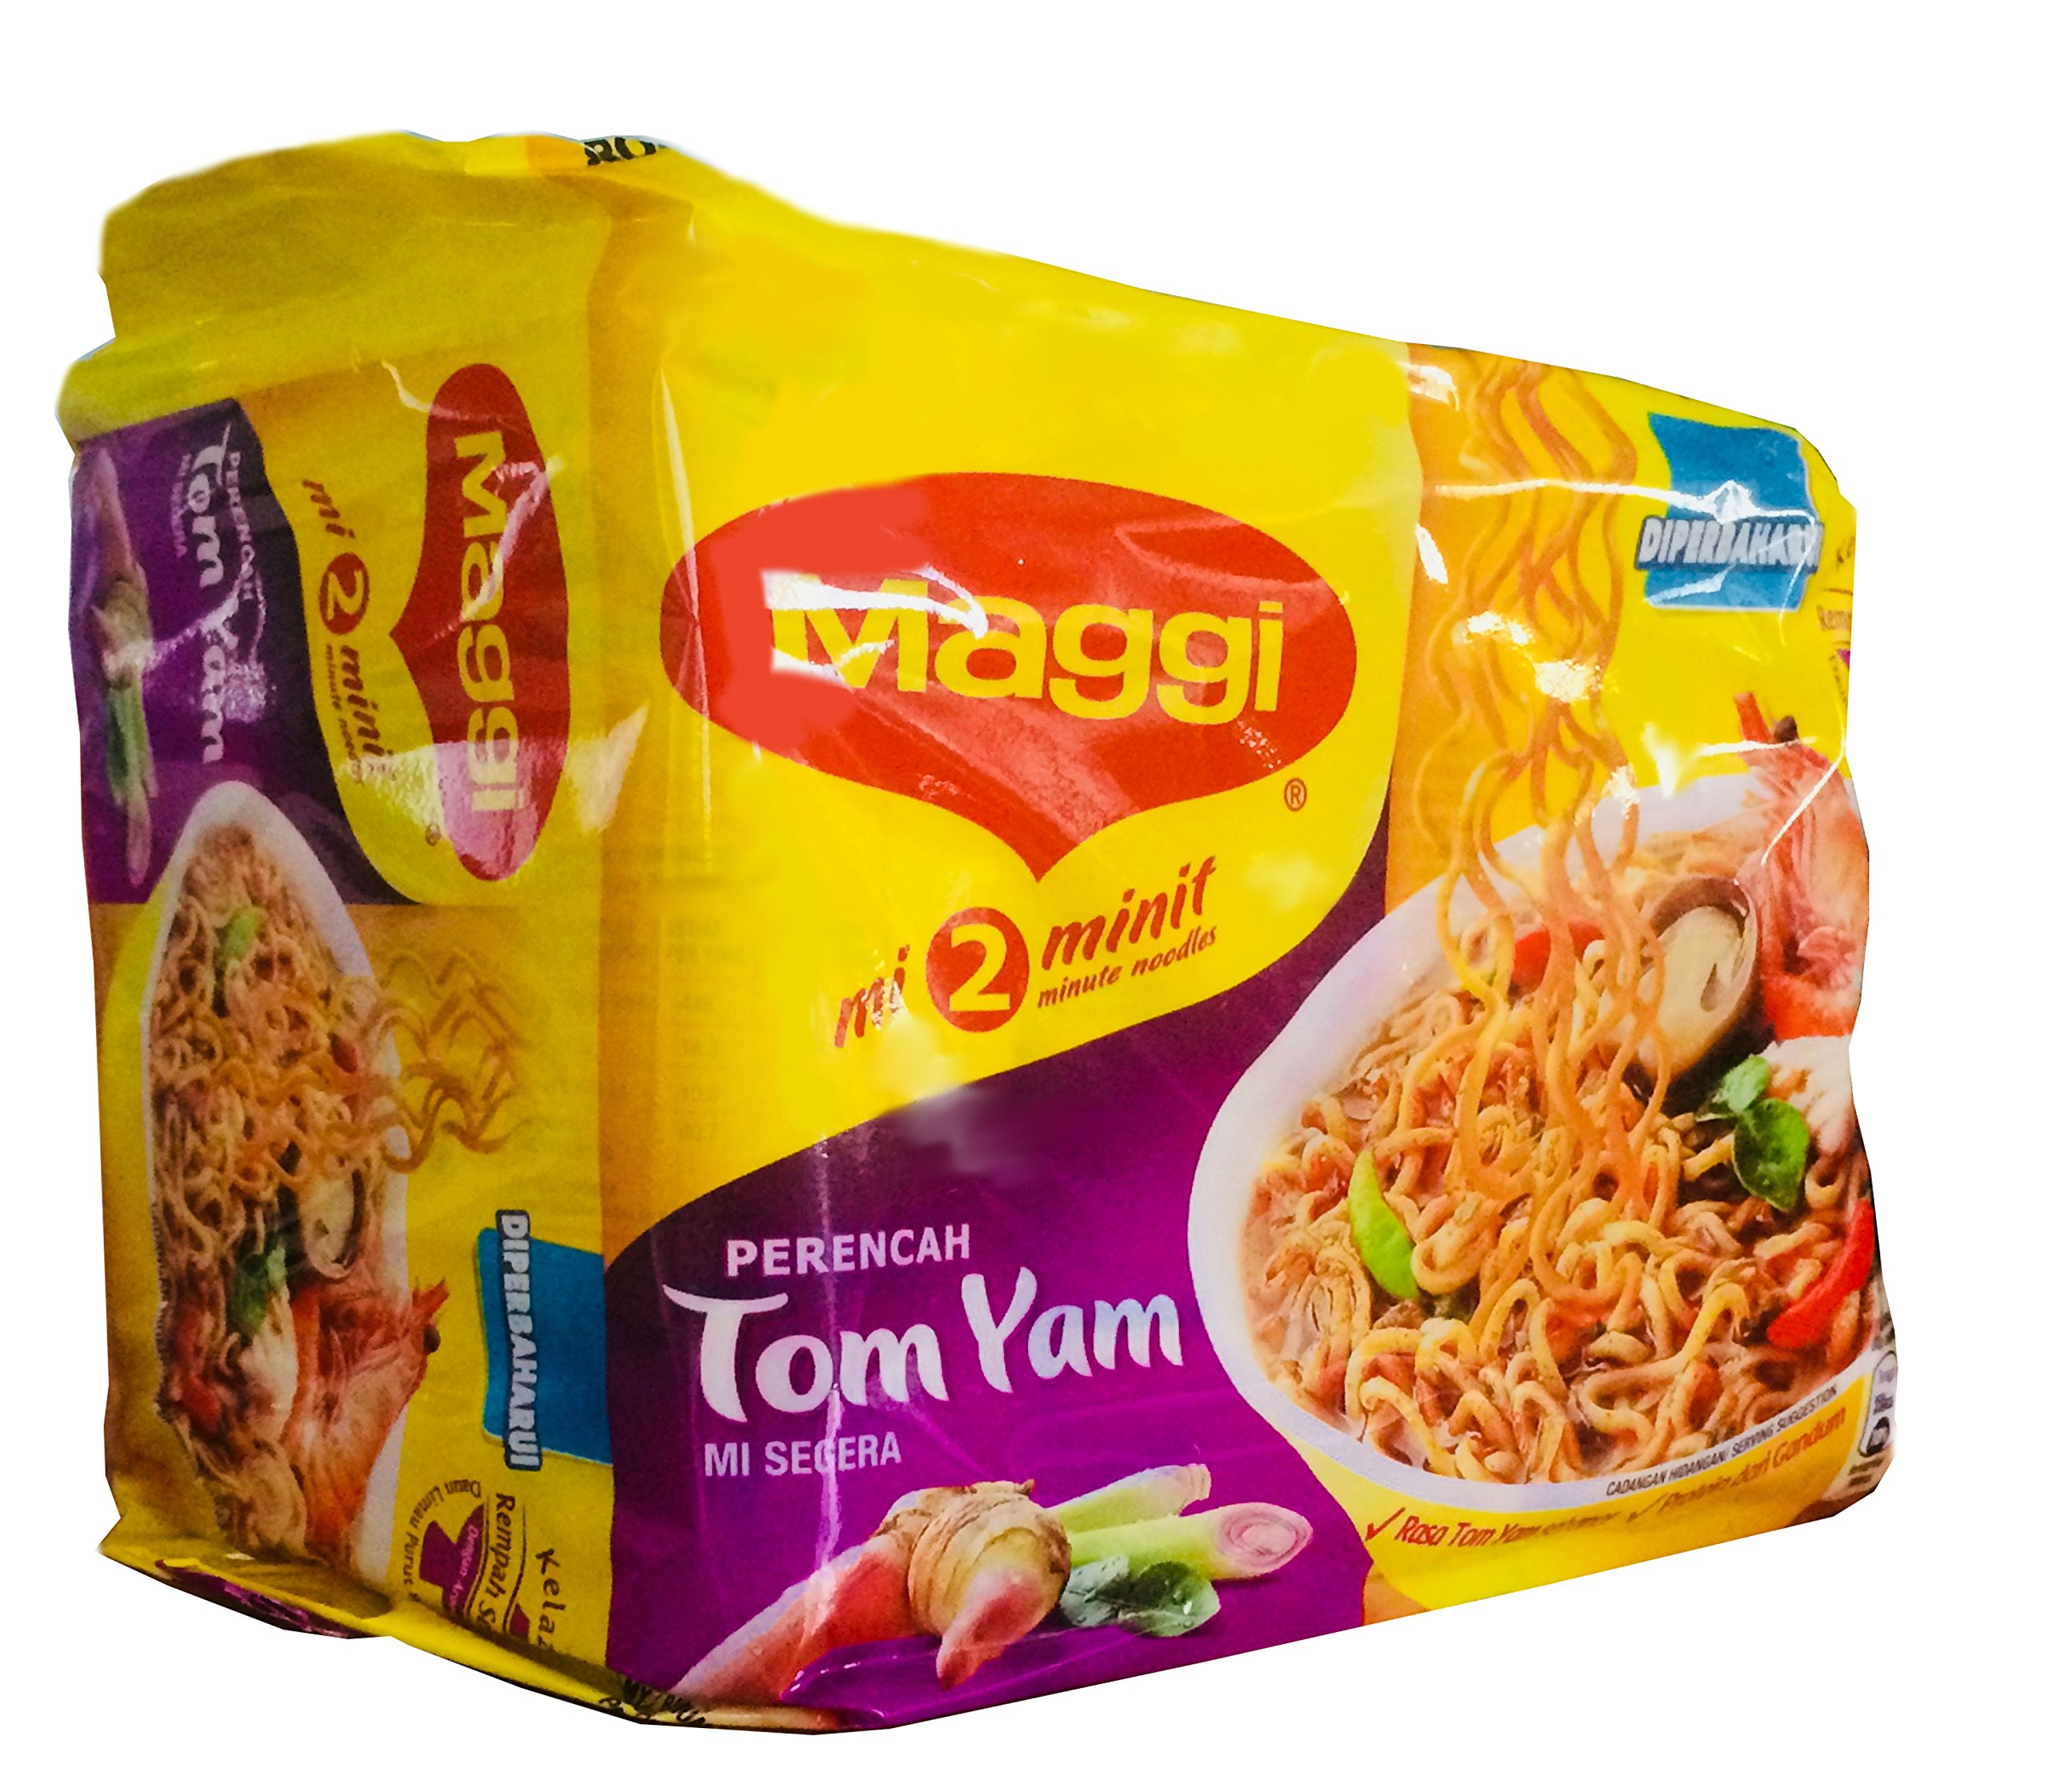 Maggi 2 Minute Noodles Tom Yam Flavour - 80g - Pack of 5 (80g x 5) by Maggi